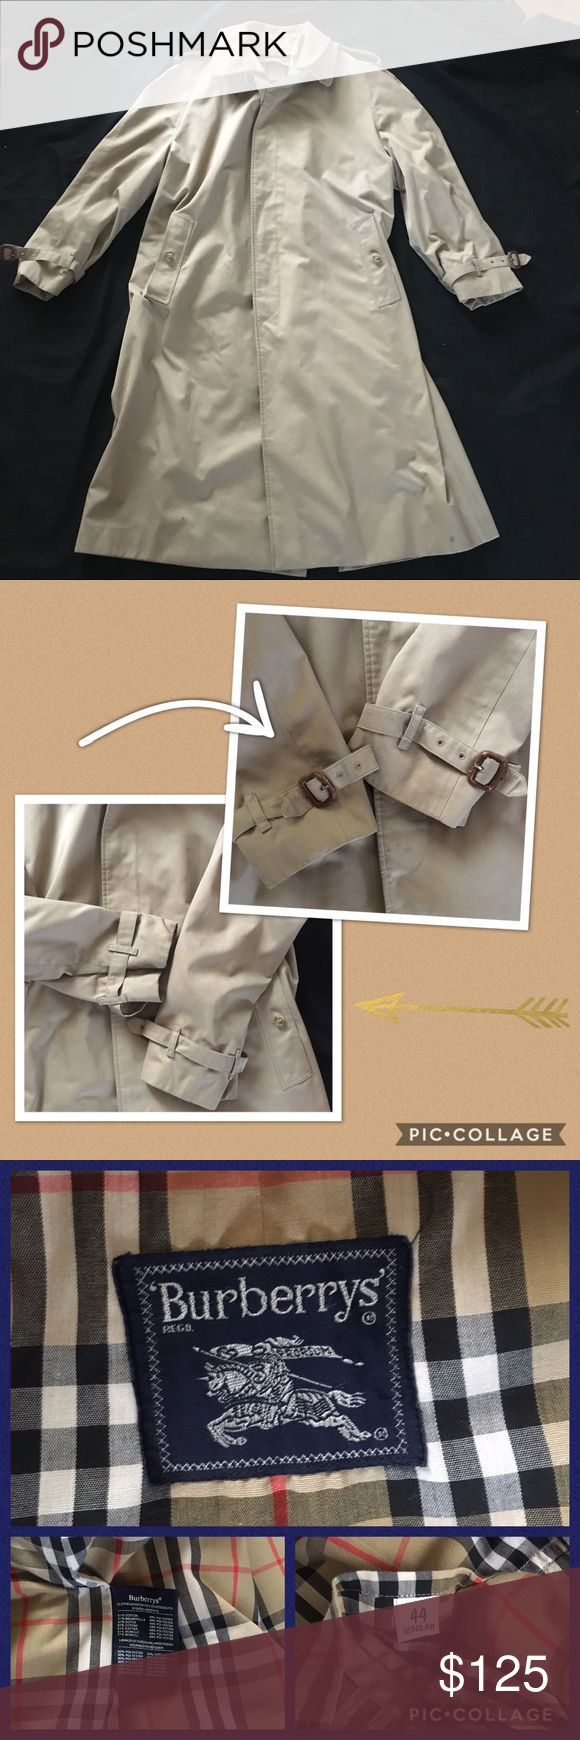 "Vintage Burberry Men's Trench Coat 44 Regular Tan Camel color. Lined with belt loops (no belt included). Total length measures apx. 45"", sleeve length measures apx. 25"", chest measures apx. 24"" pit to pit and Shoulder to shoulder across the back is apx. 12"". The collar is removable. Has pass through pockets. From the 80's. It is a gorgeous jacket in overall great condition with some minor spotting on the front and back from normal use. The trim on the buckles has minimal peeling from normal…"